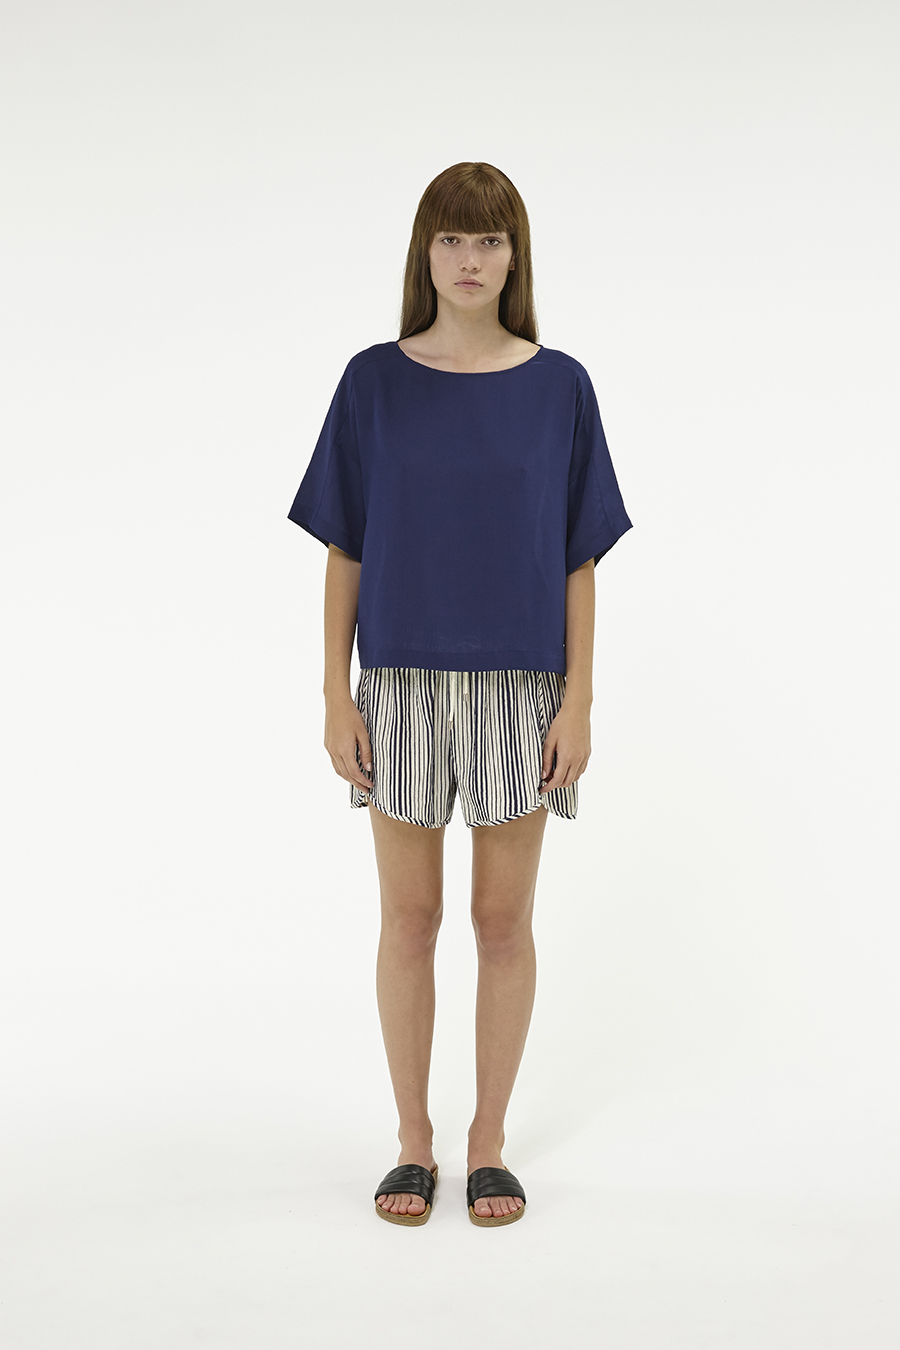 Huffer_Q3-16_W-Silk-Daria-Top_Navy-01